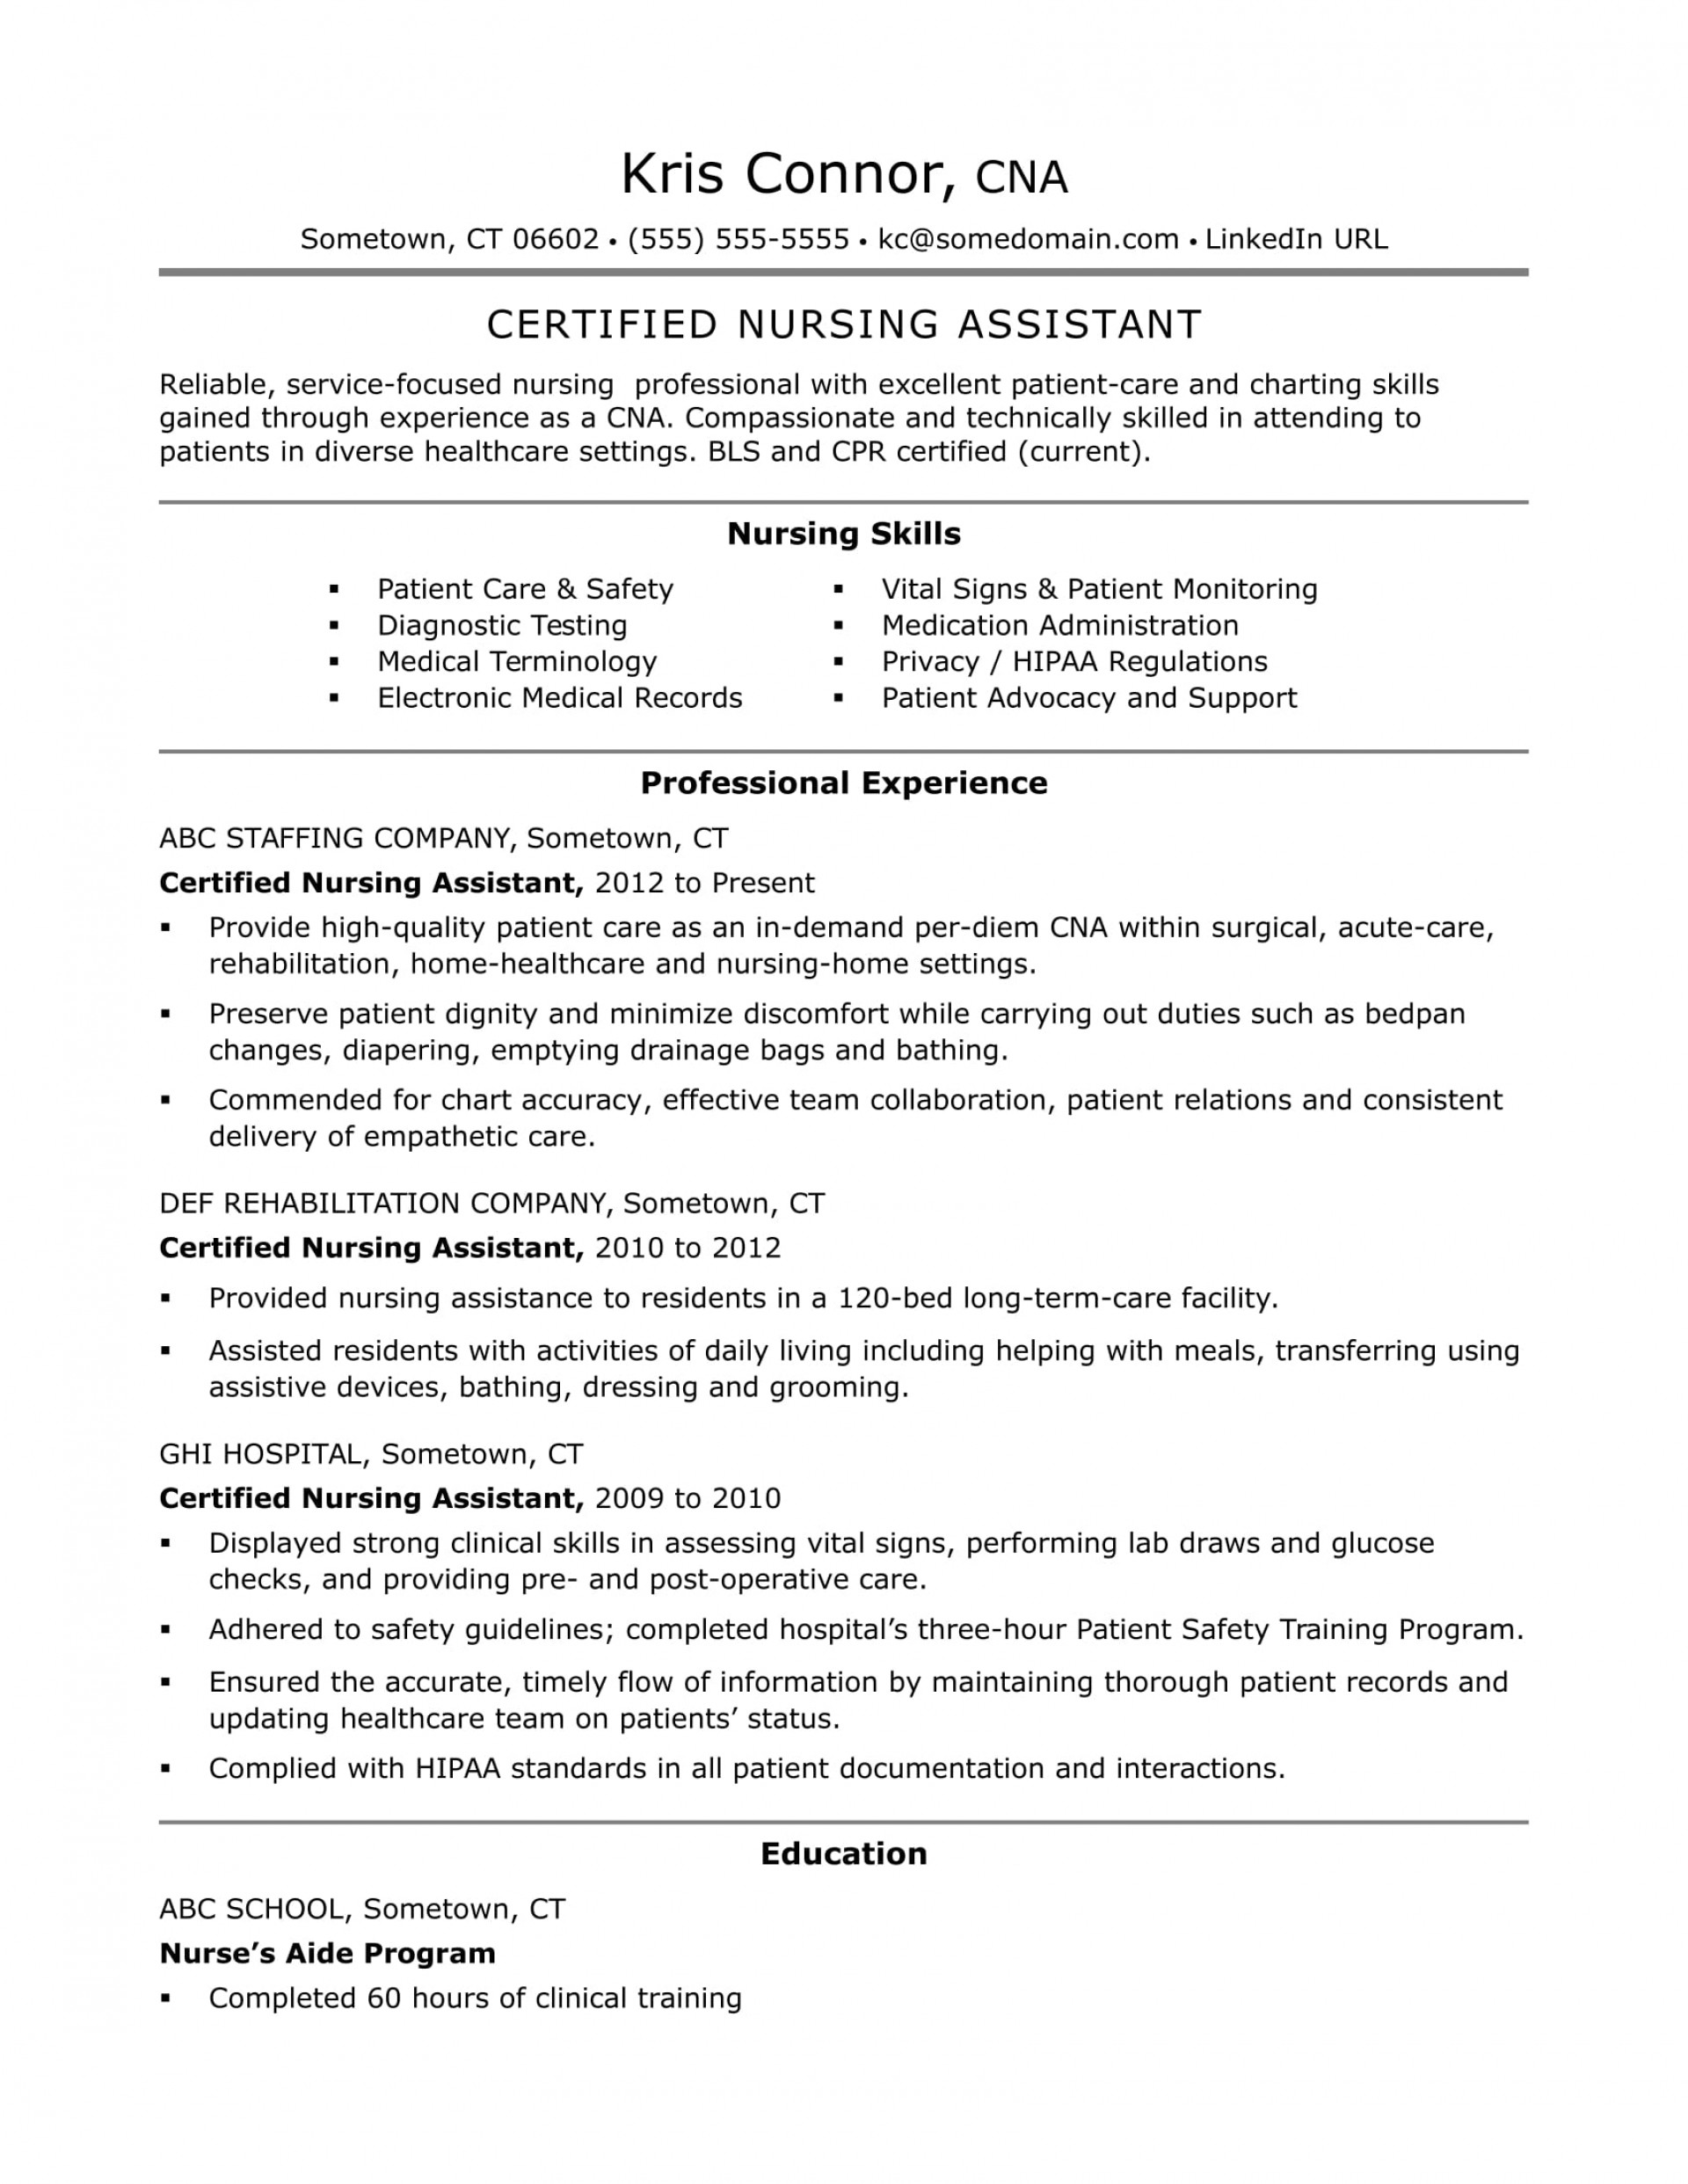 023 Certified Nursing Assistant Essay Example Archaicawful Hipaa 1920